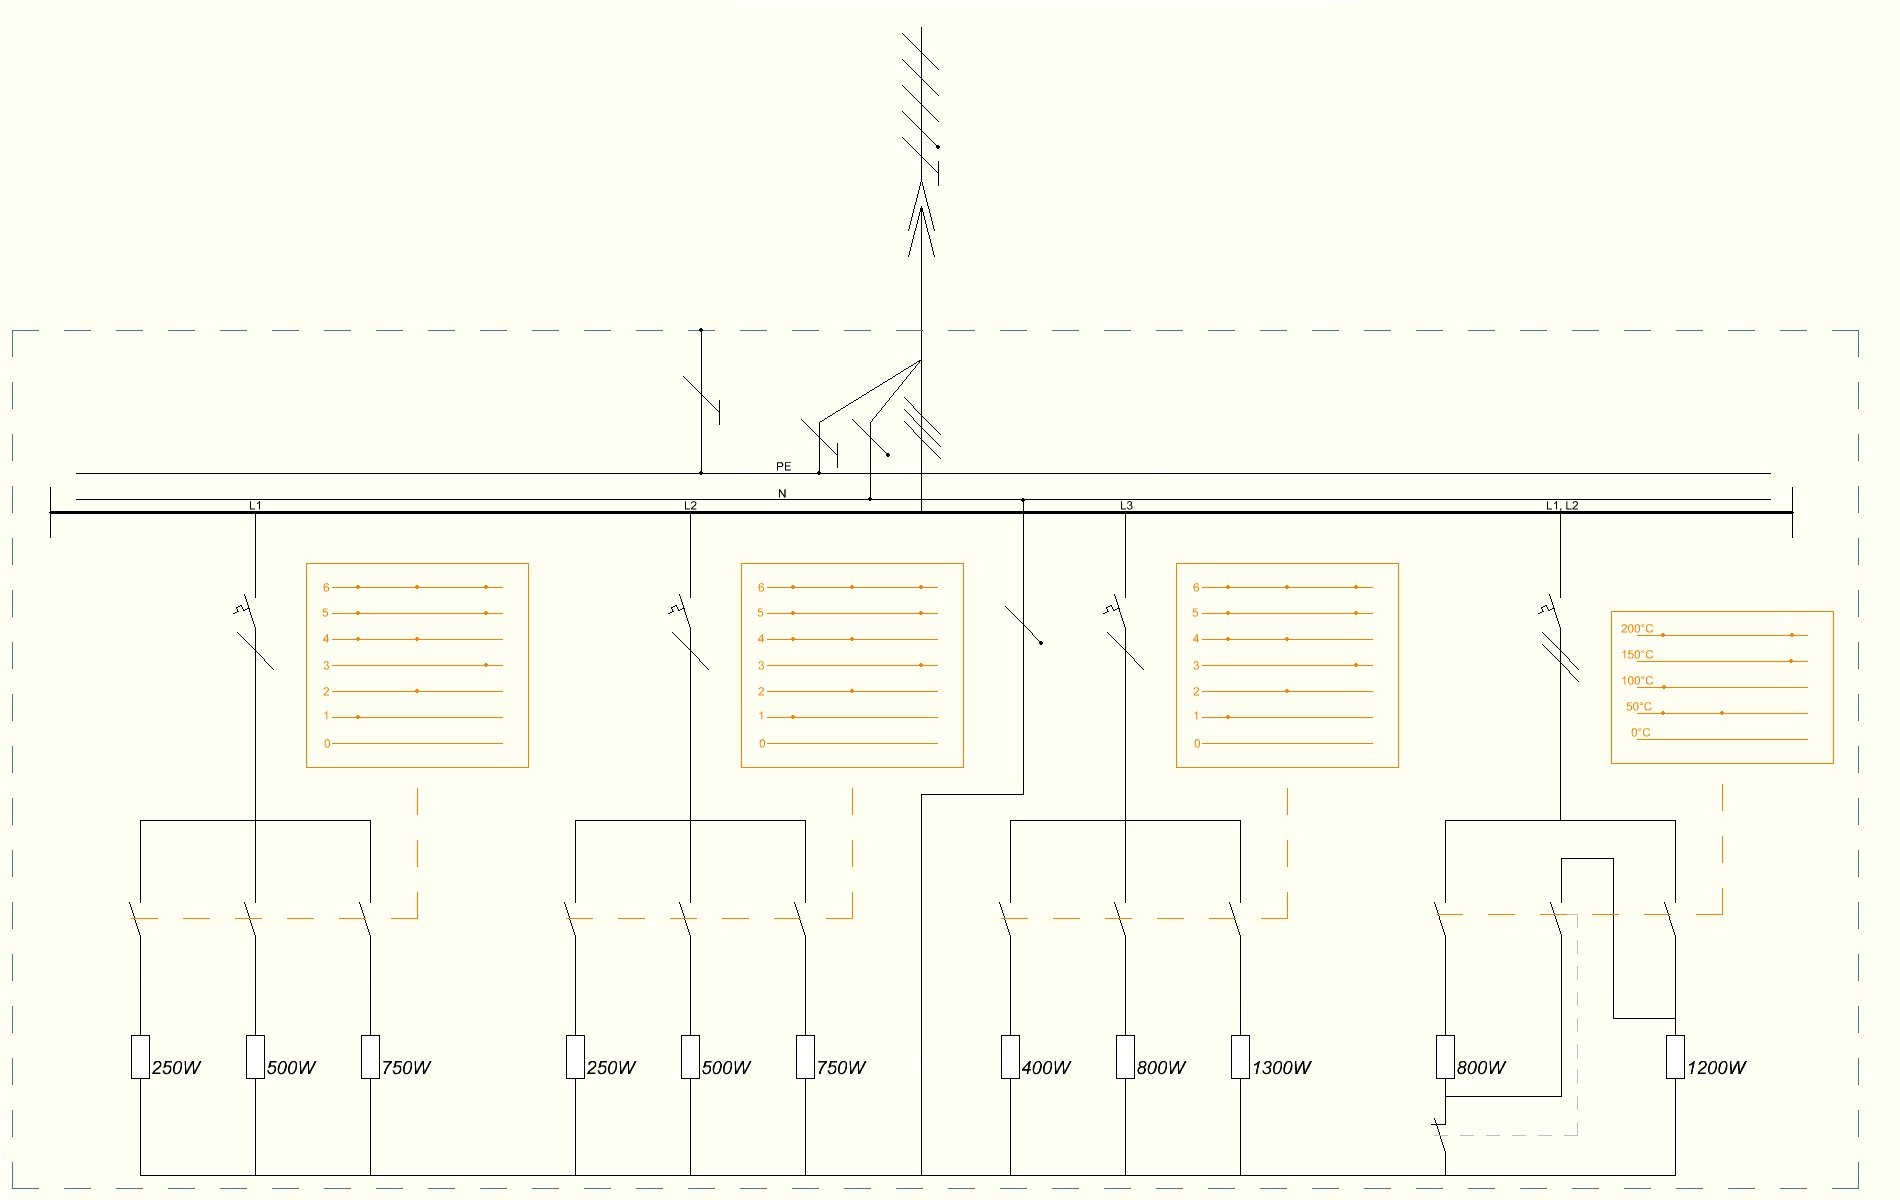 file:schematic wiring diagram of electrical stove jpg